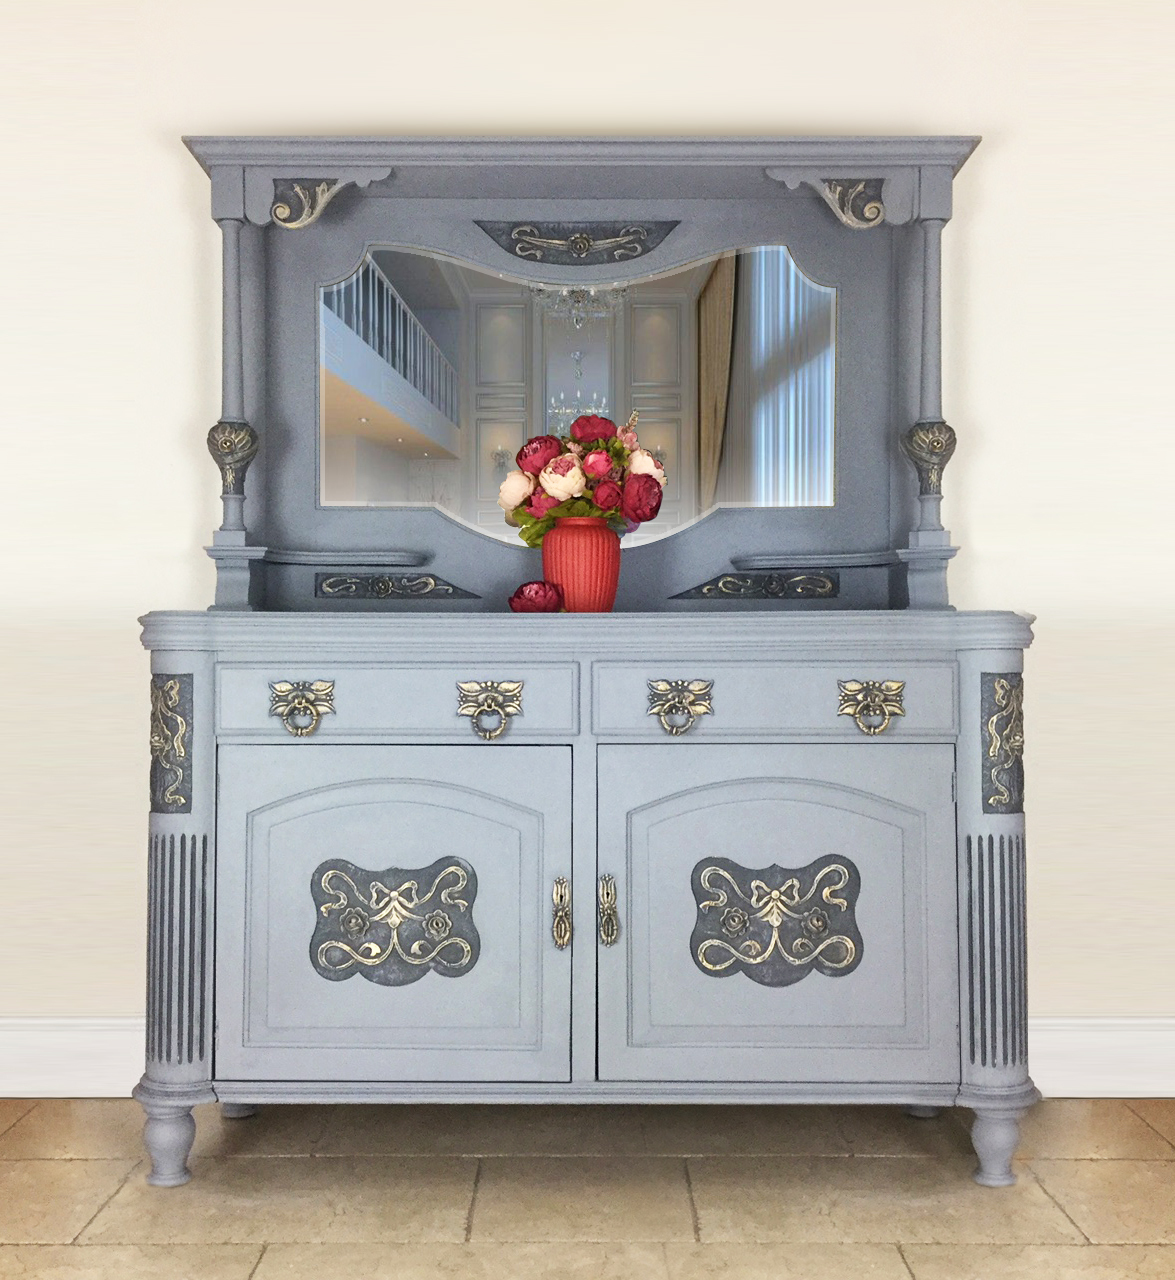 Office Valentines Day Decorations, Grey Vintage Mirrored Sideboard Dresser Living Room Dining Room Furniture Kitchen Storage Cabinet Vinterior